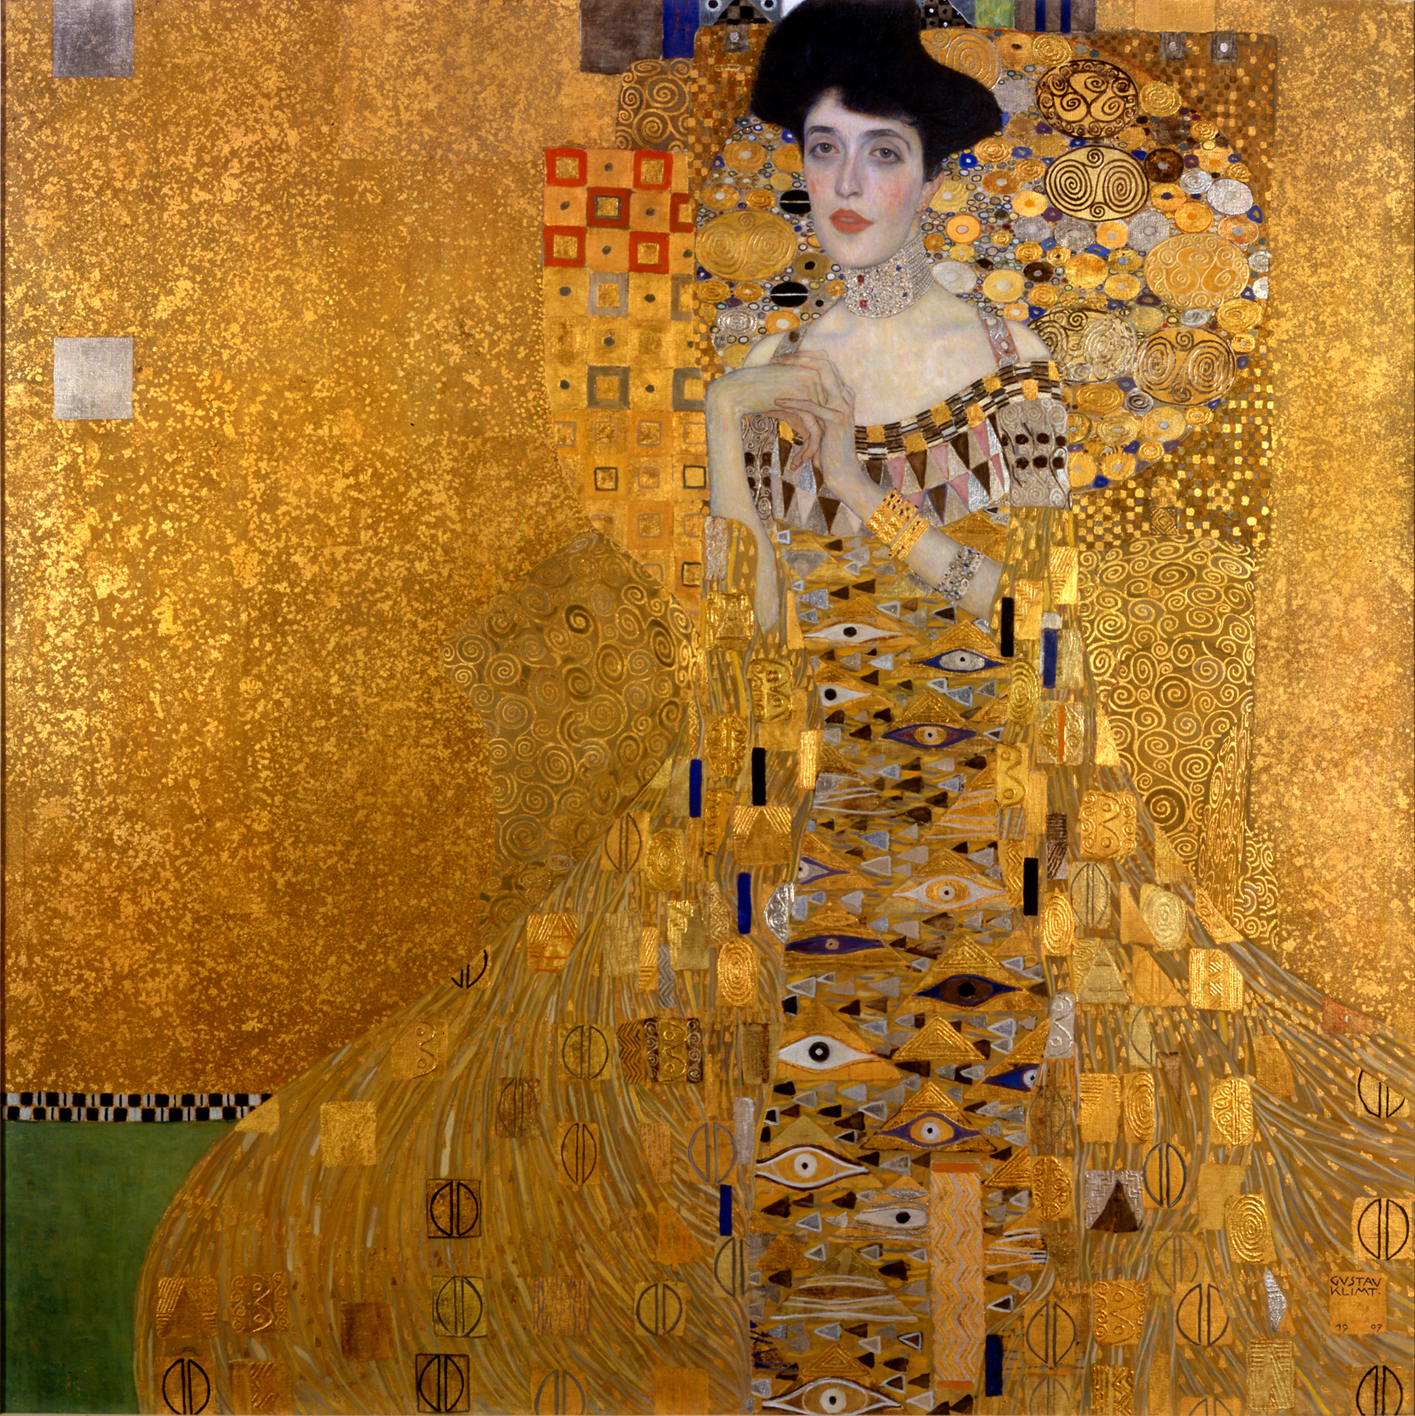 Gustav Klimt,  Portrait of Adele Bloch-Bauer I , 1907 (Neue Galerie, New York City)